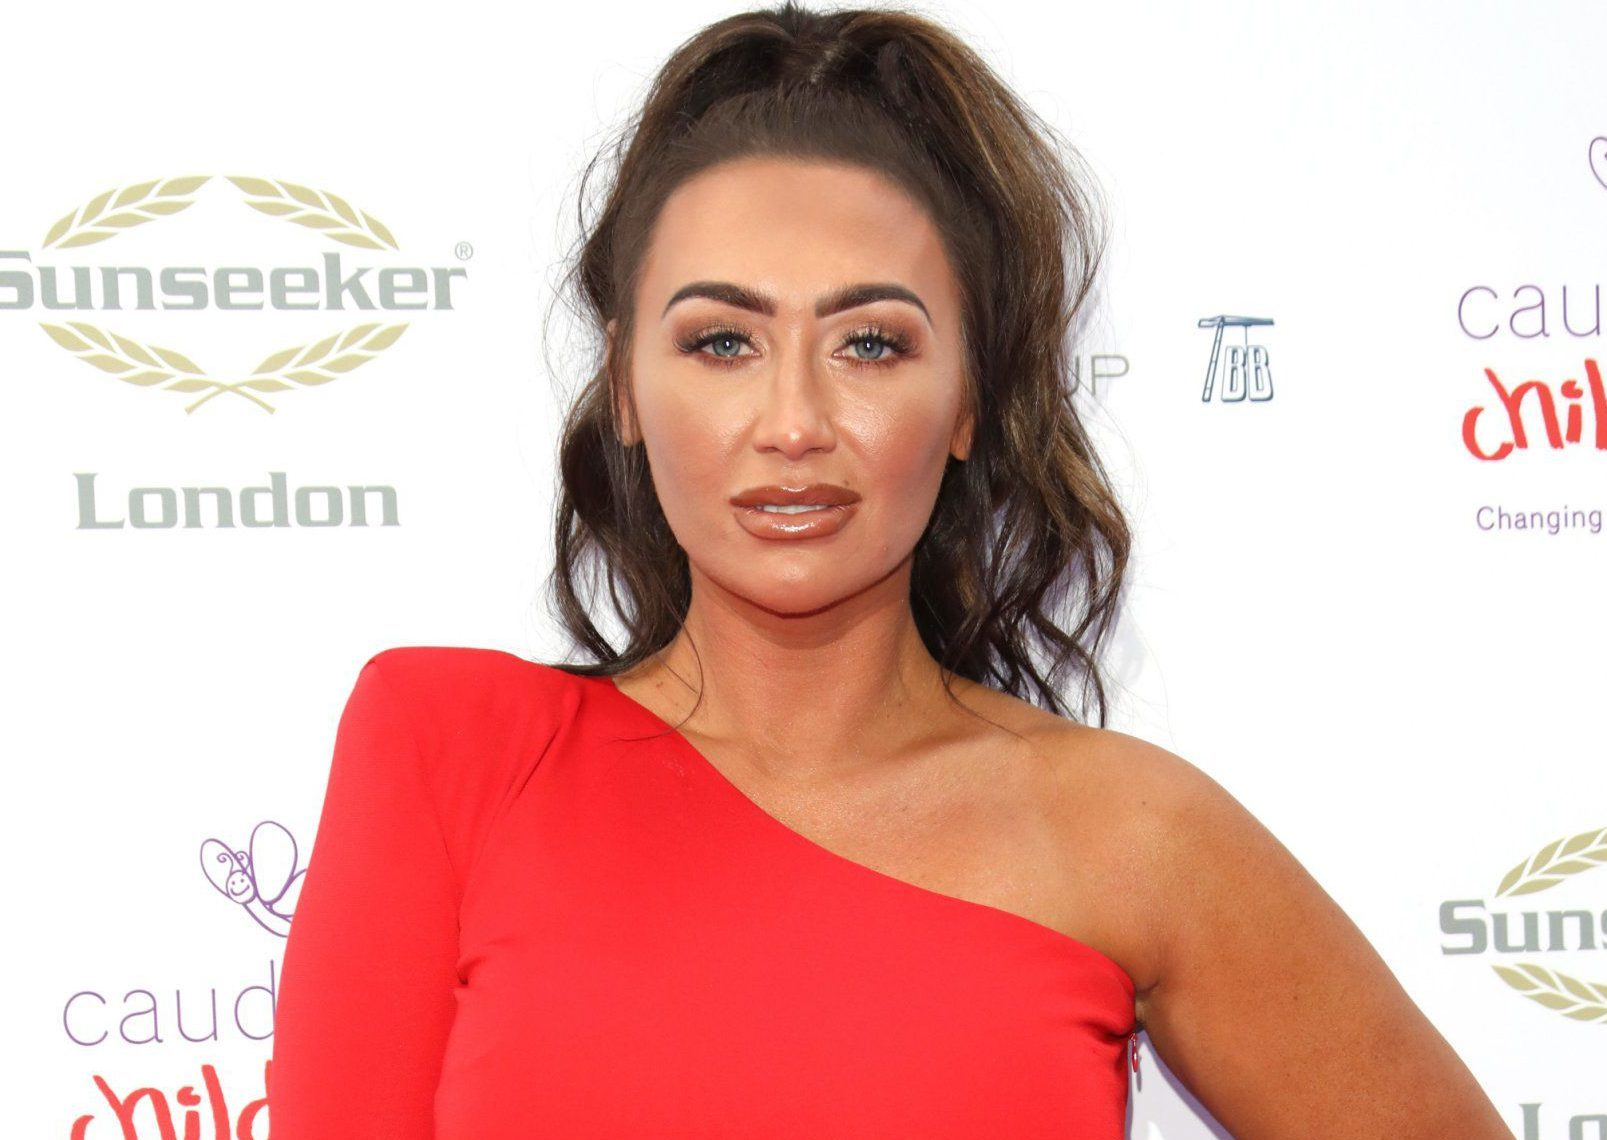 The Caudwell Butterfly Ball 2018 - Arrivals Featuring: Lauren Goodger Where: London, United Kingdom When: 14 Jun 2018 Credit: Lia Toby/WENN.com